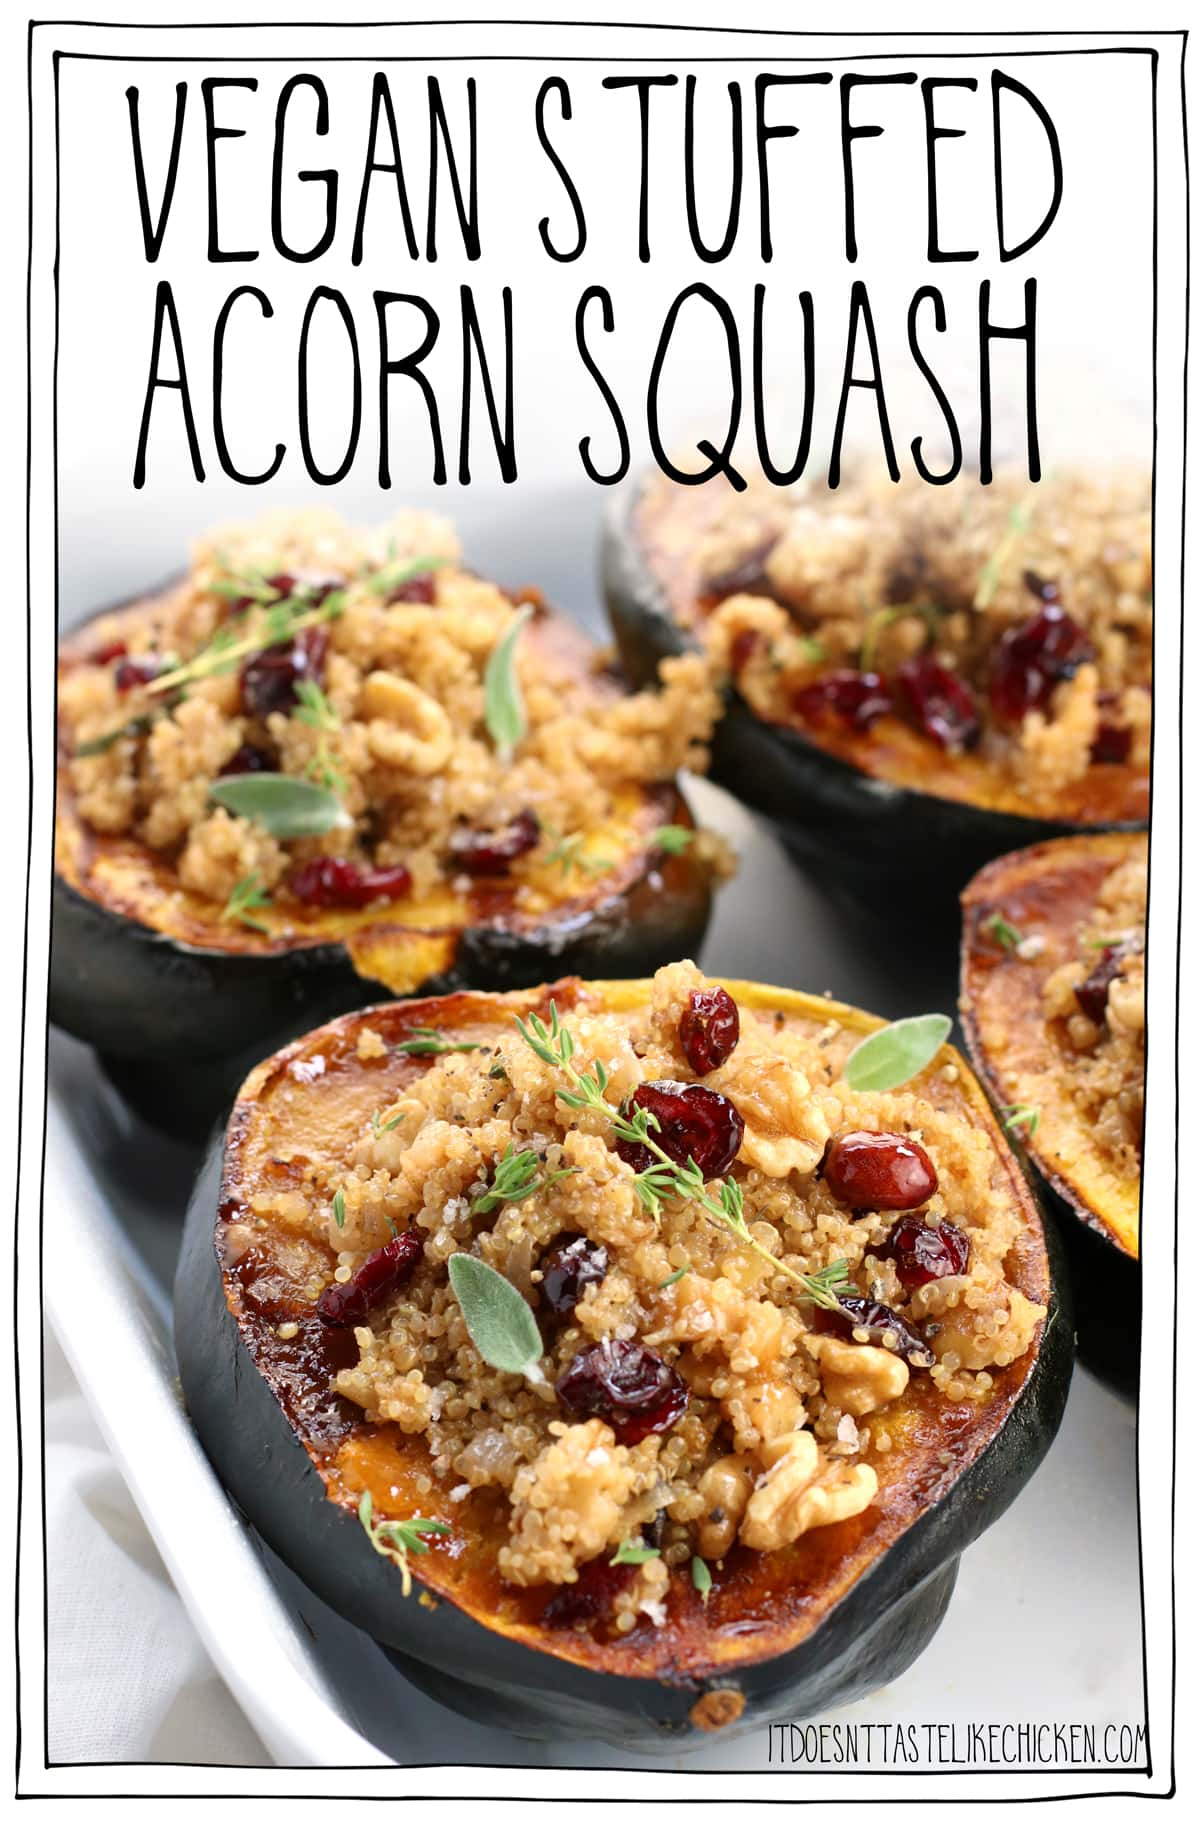 Vegan Stuffed Acorn Squash! Easy to make and can be made ahead of time. The perfect main dish for Thanksgiving or Christmas. The squash is stuffed with quinoa, seasonal spices, nuts or seeds, and pops of sweet dried cranberry. Delish! #itdoesnttastelikechicken #veganrecipes #veganthanksgiving